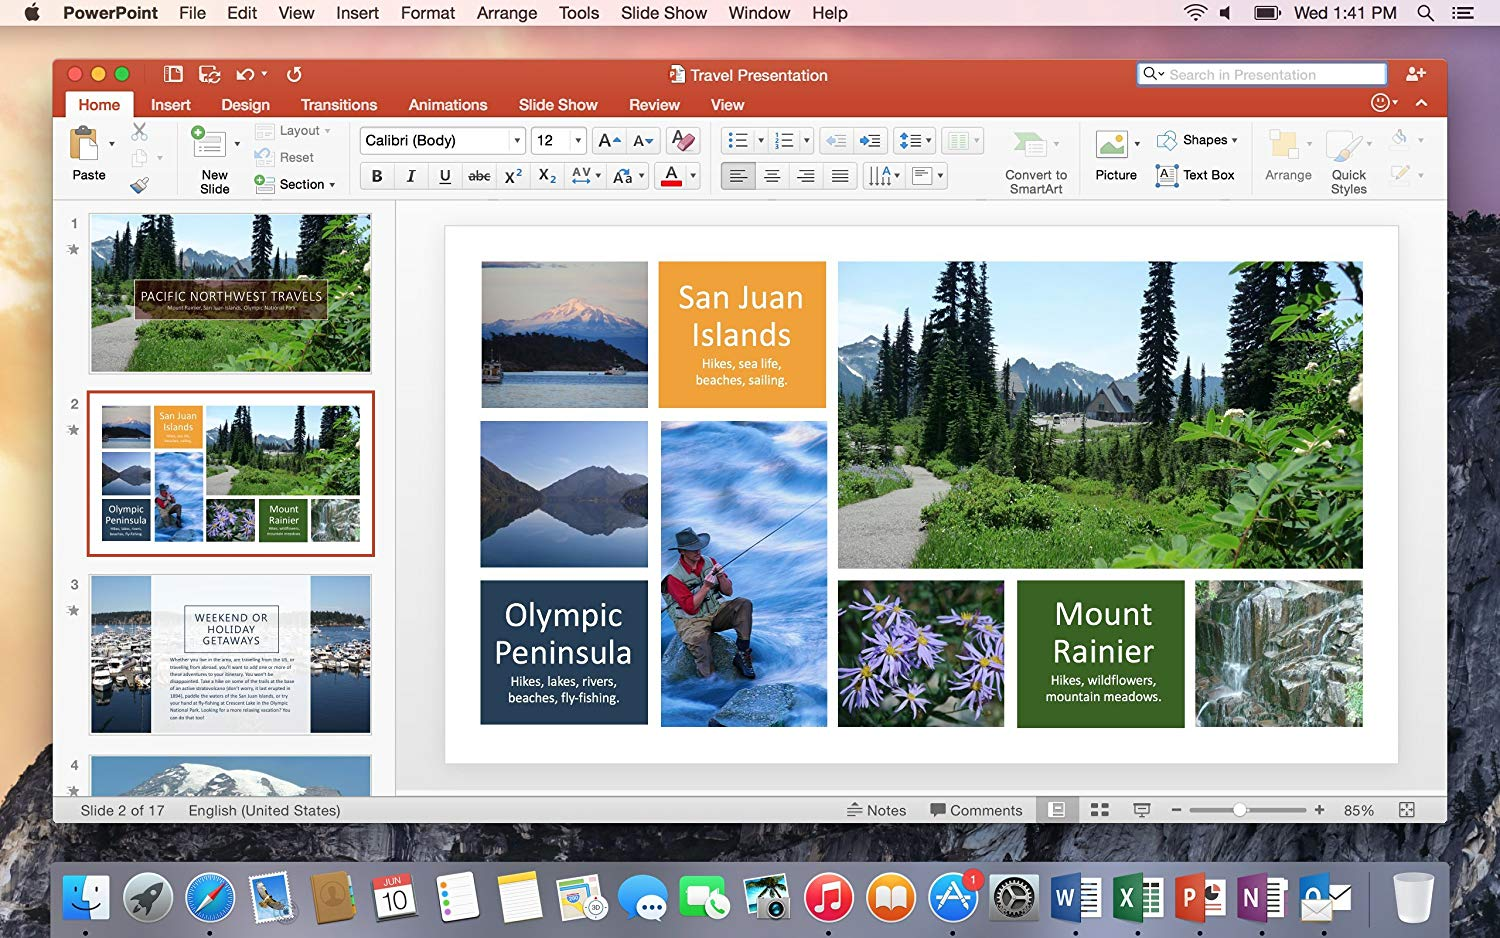 Mac Business 2016 PowerPoint in action